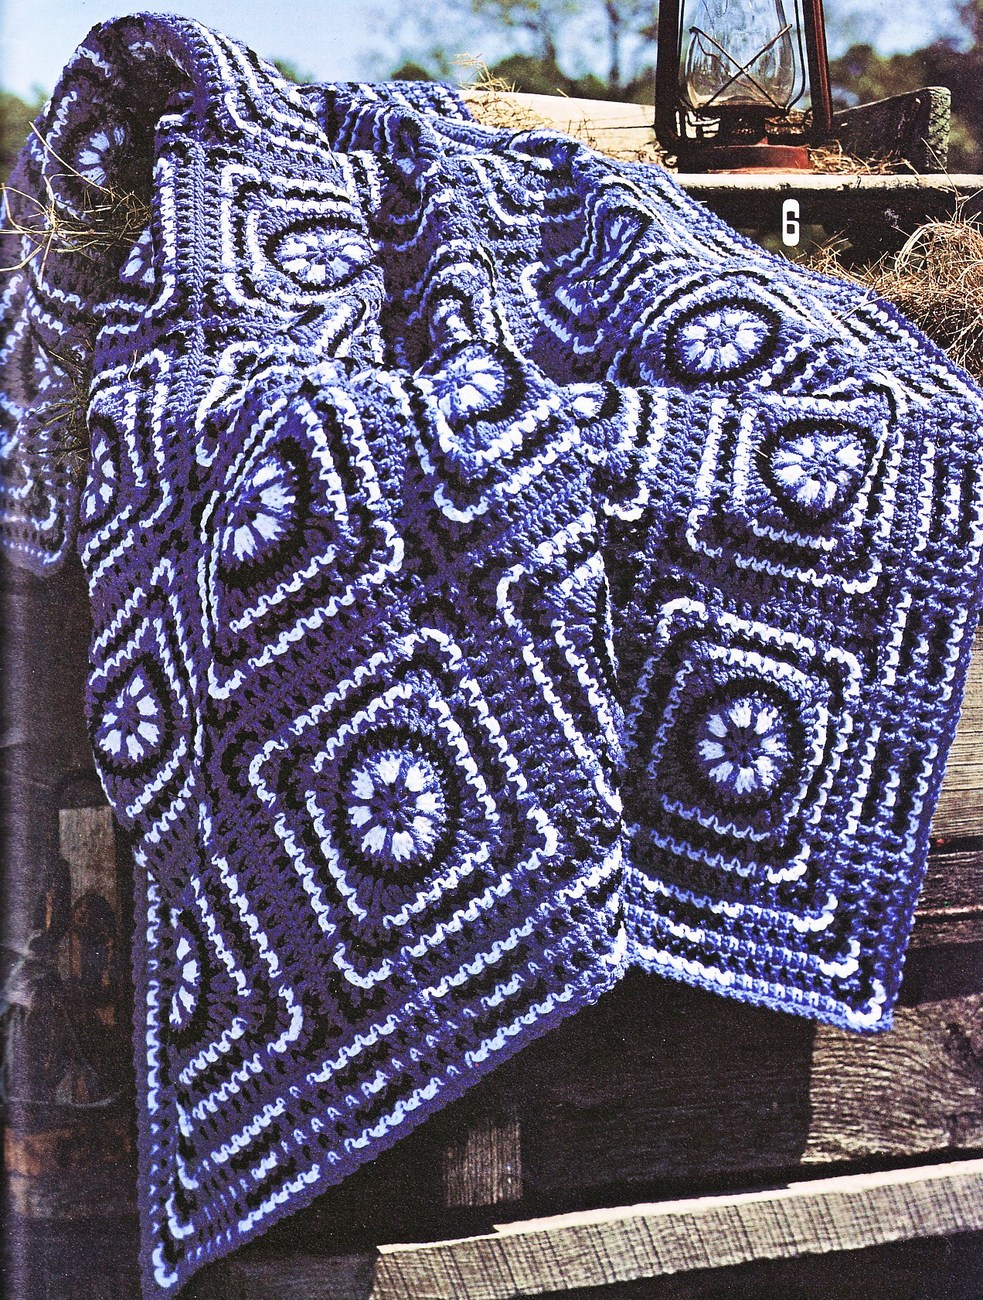 Crochet Pattern Southwestern Afghan : Western Warmth Afghans Crochet Patterns 8 Designs Blankets ...